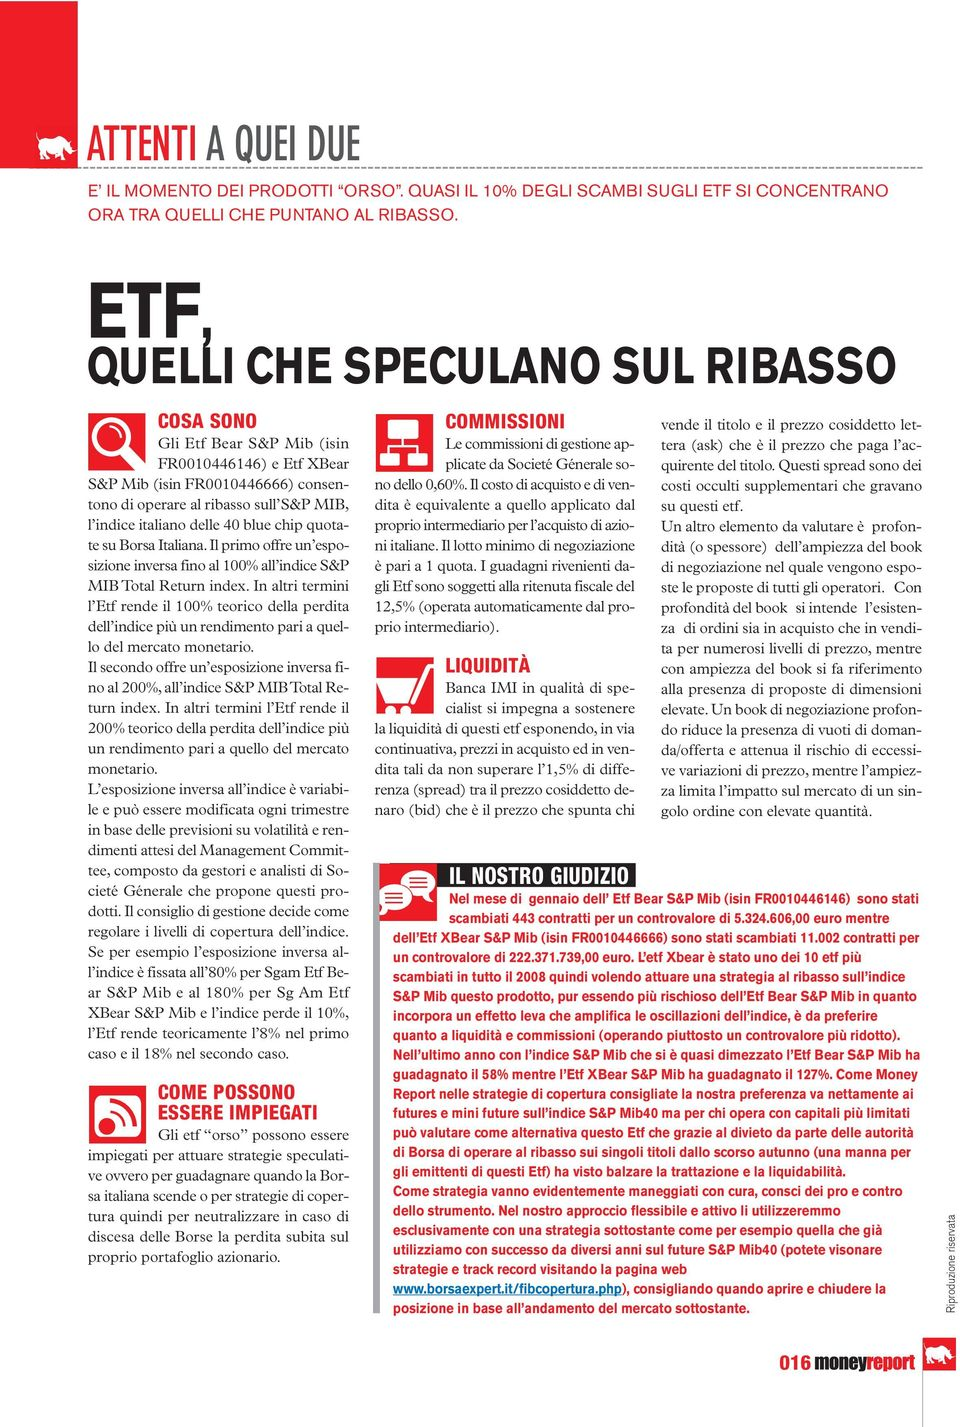 blue chip quotate su Borsa Italiana. Il primo offre un esposizione inversa fino al 100% all indice S&P MIB Total eturn index.